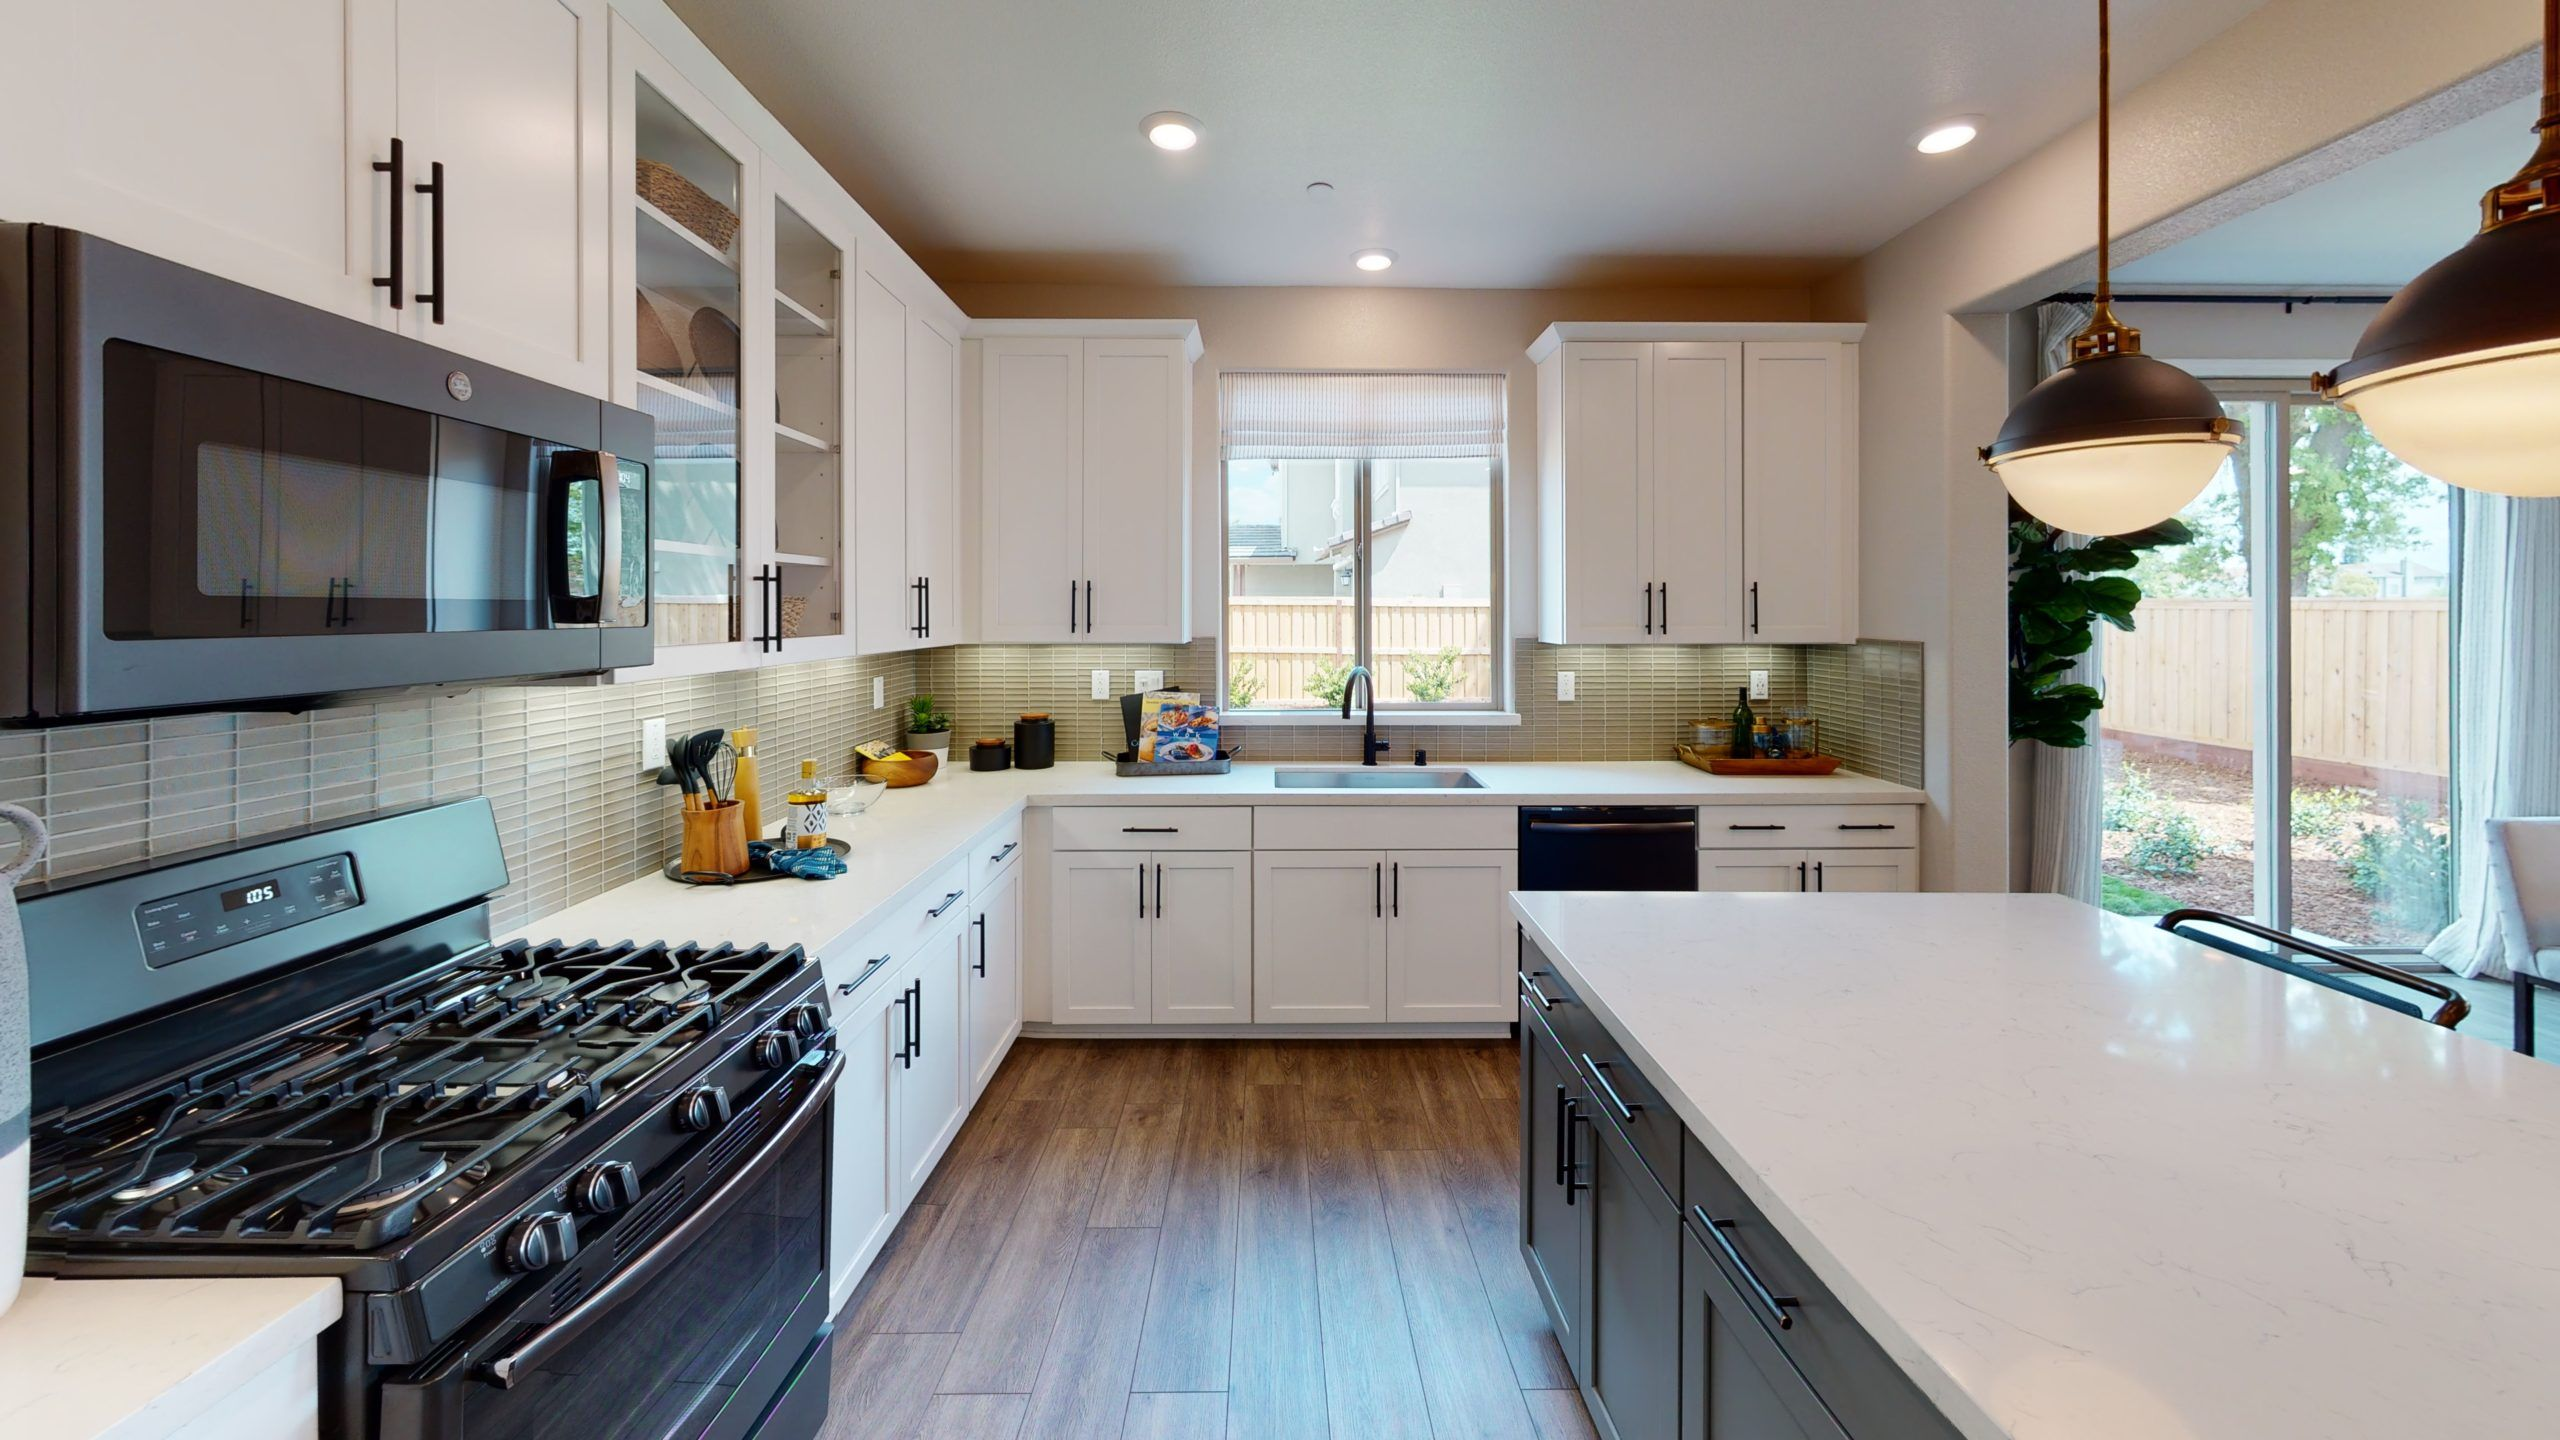 Kitchen featured in the Residence 4 By Next New Homes Group in Sacramento, CA